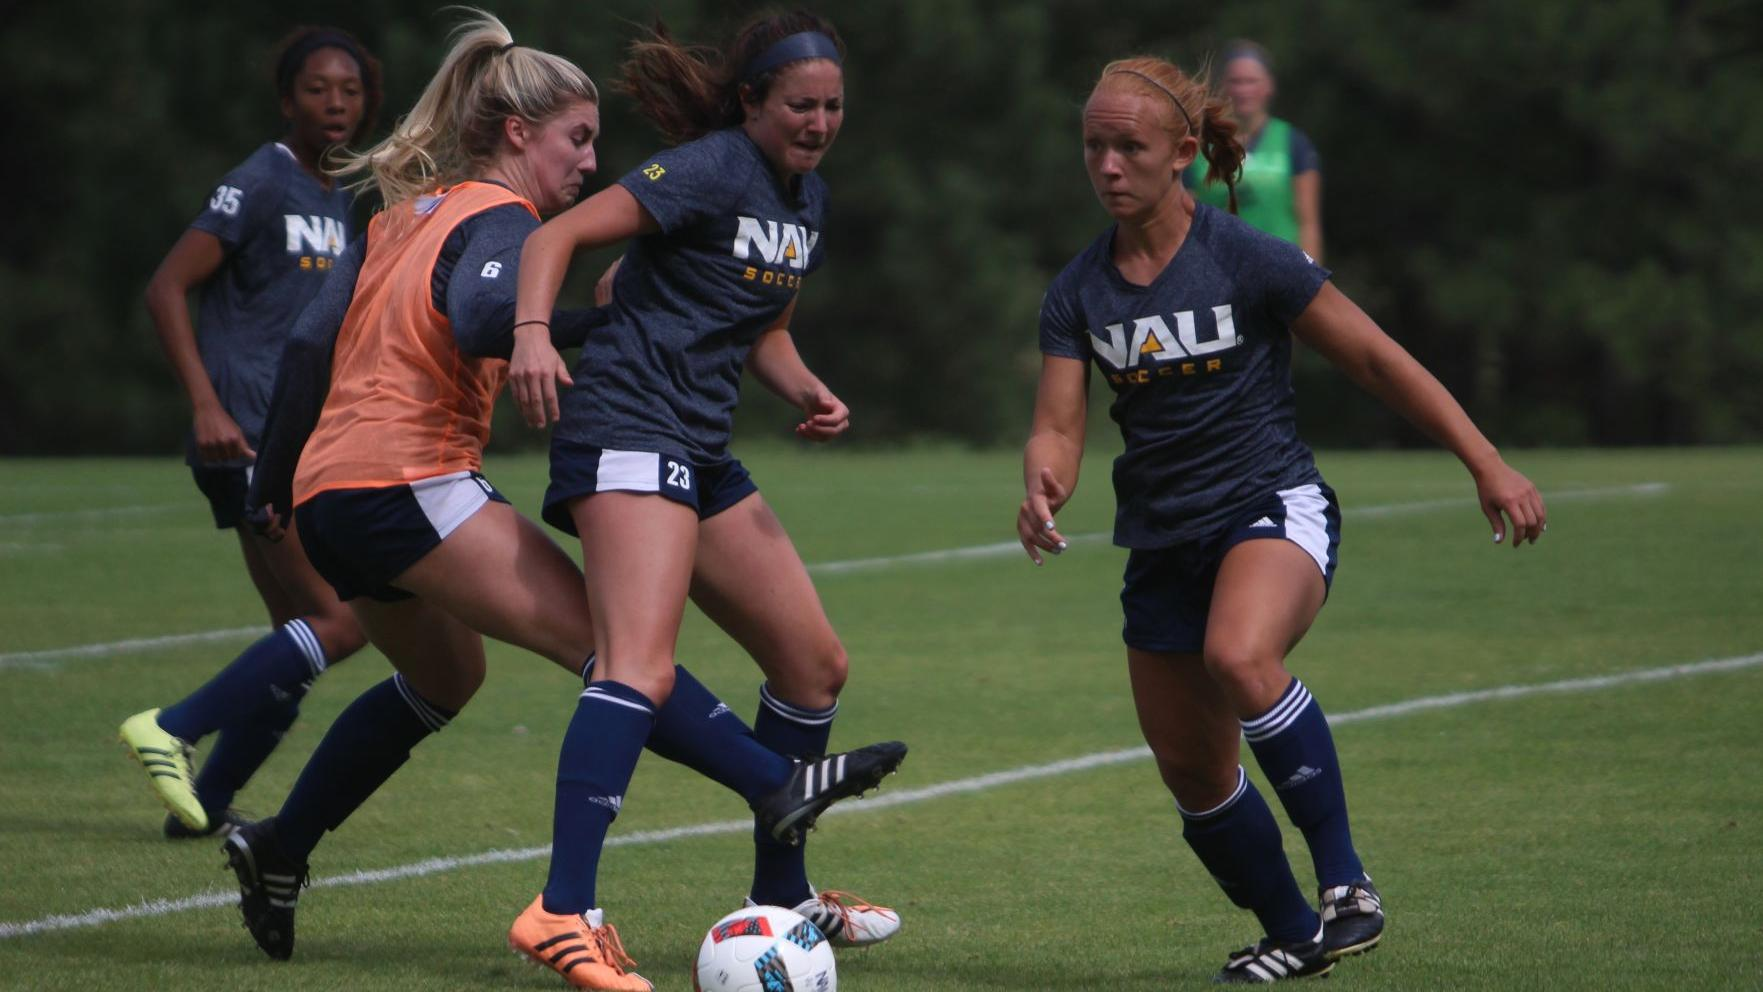 Picked second in the Big Sky, NAU women's soccer opens season Friday